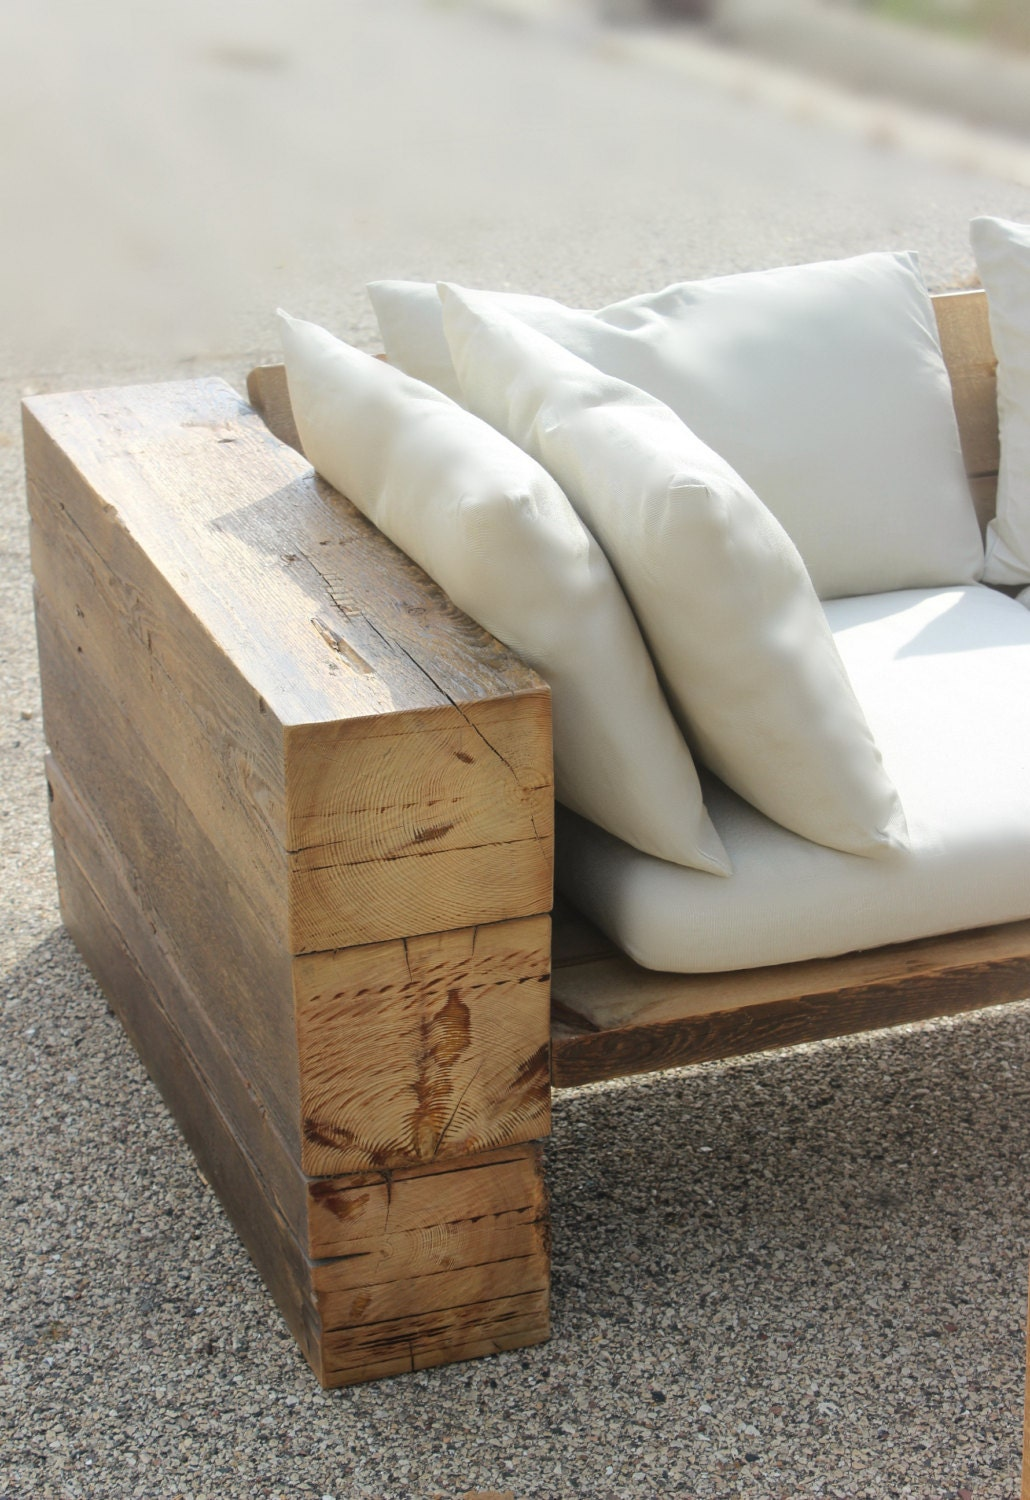 Rustic sofa couch sectional reclaimed wood by dendroco on etsy - Modelos de sofas ...